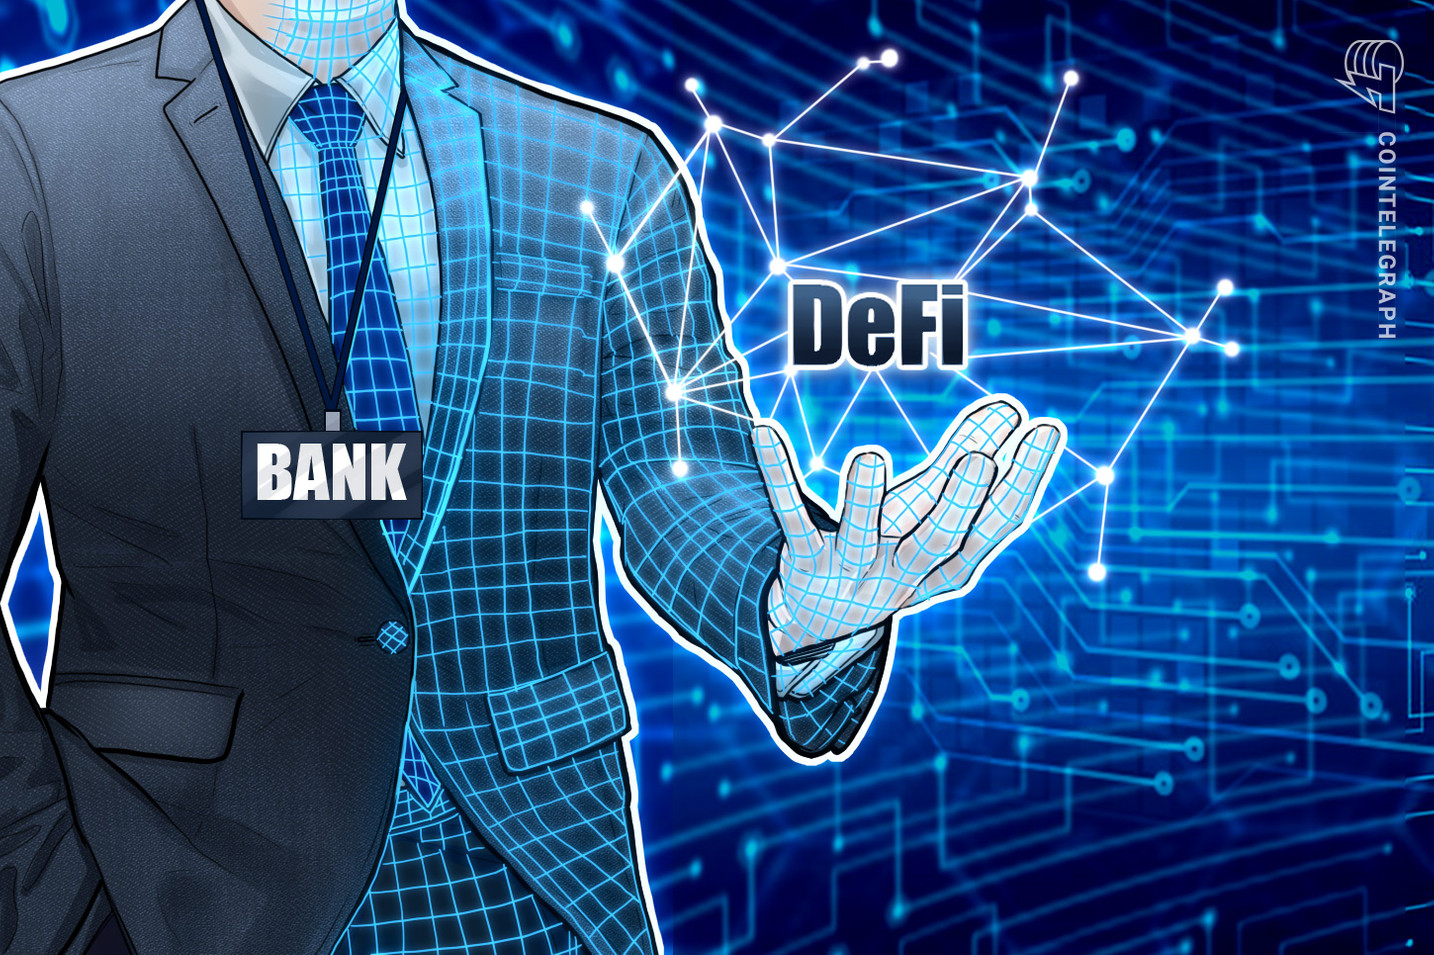 Digital banking: How DeFi can lower costs for everyone